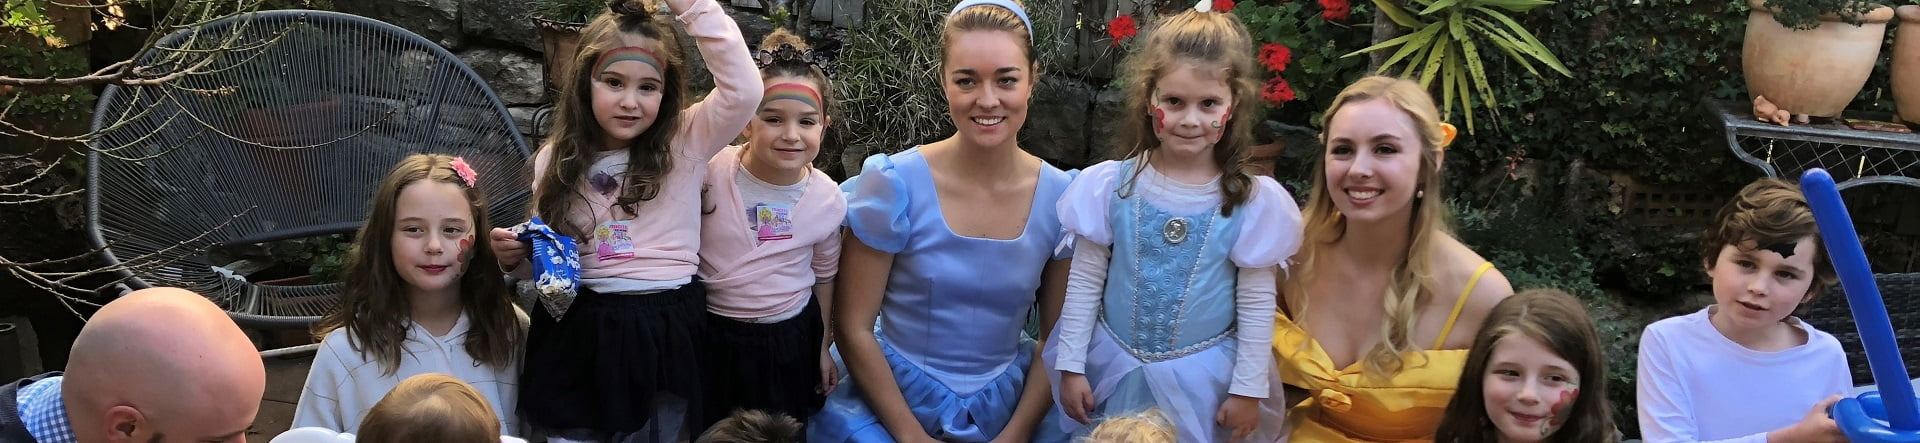 image of princess themed birthday party entertainers Belle and Cinderella with smiling children